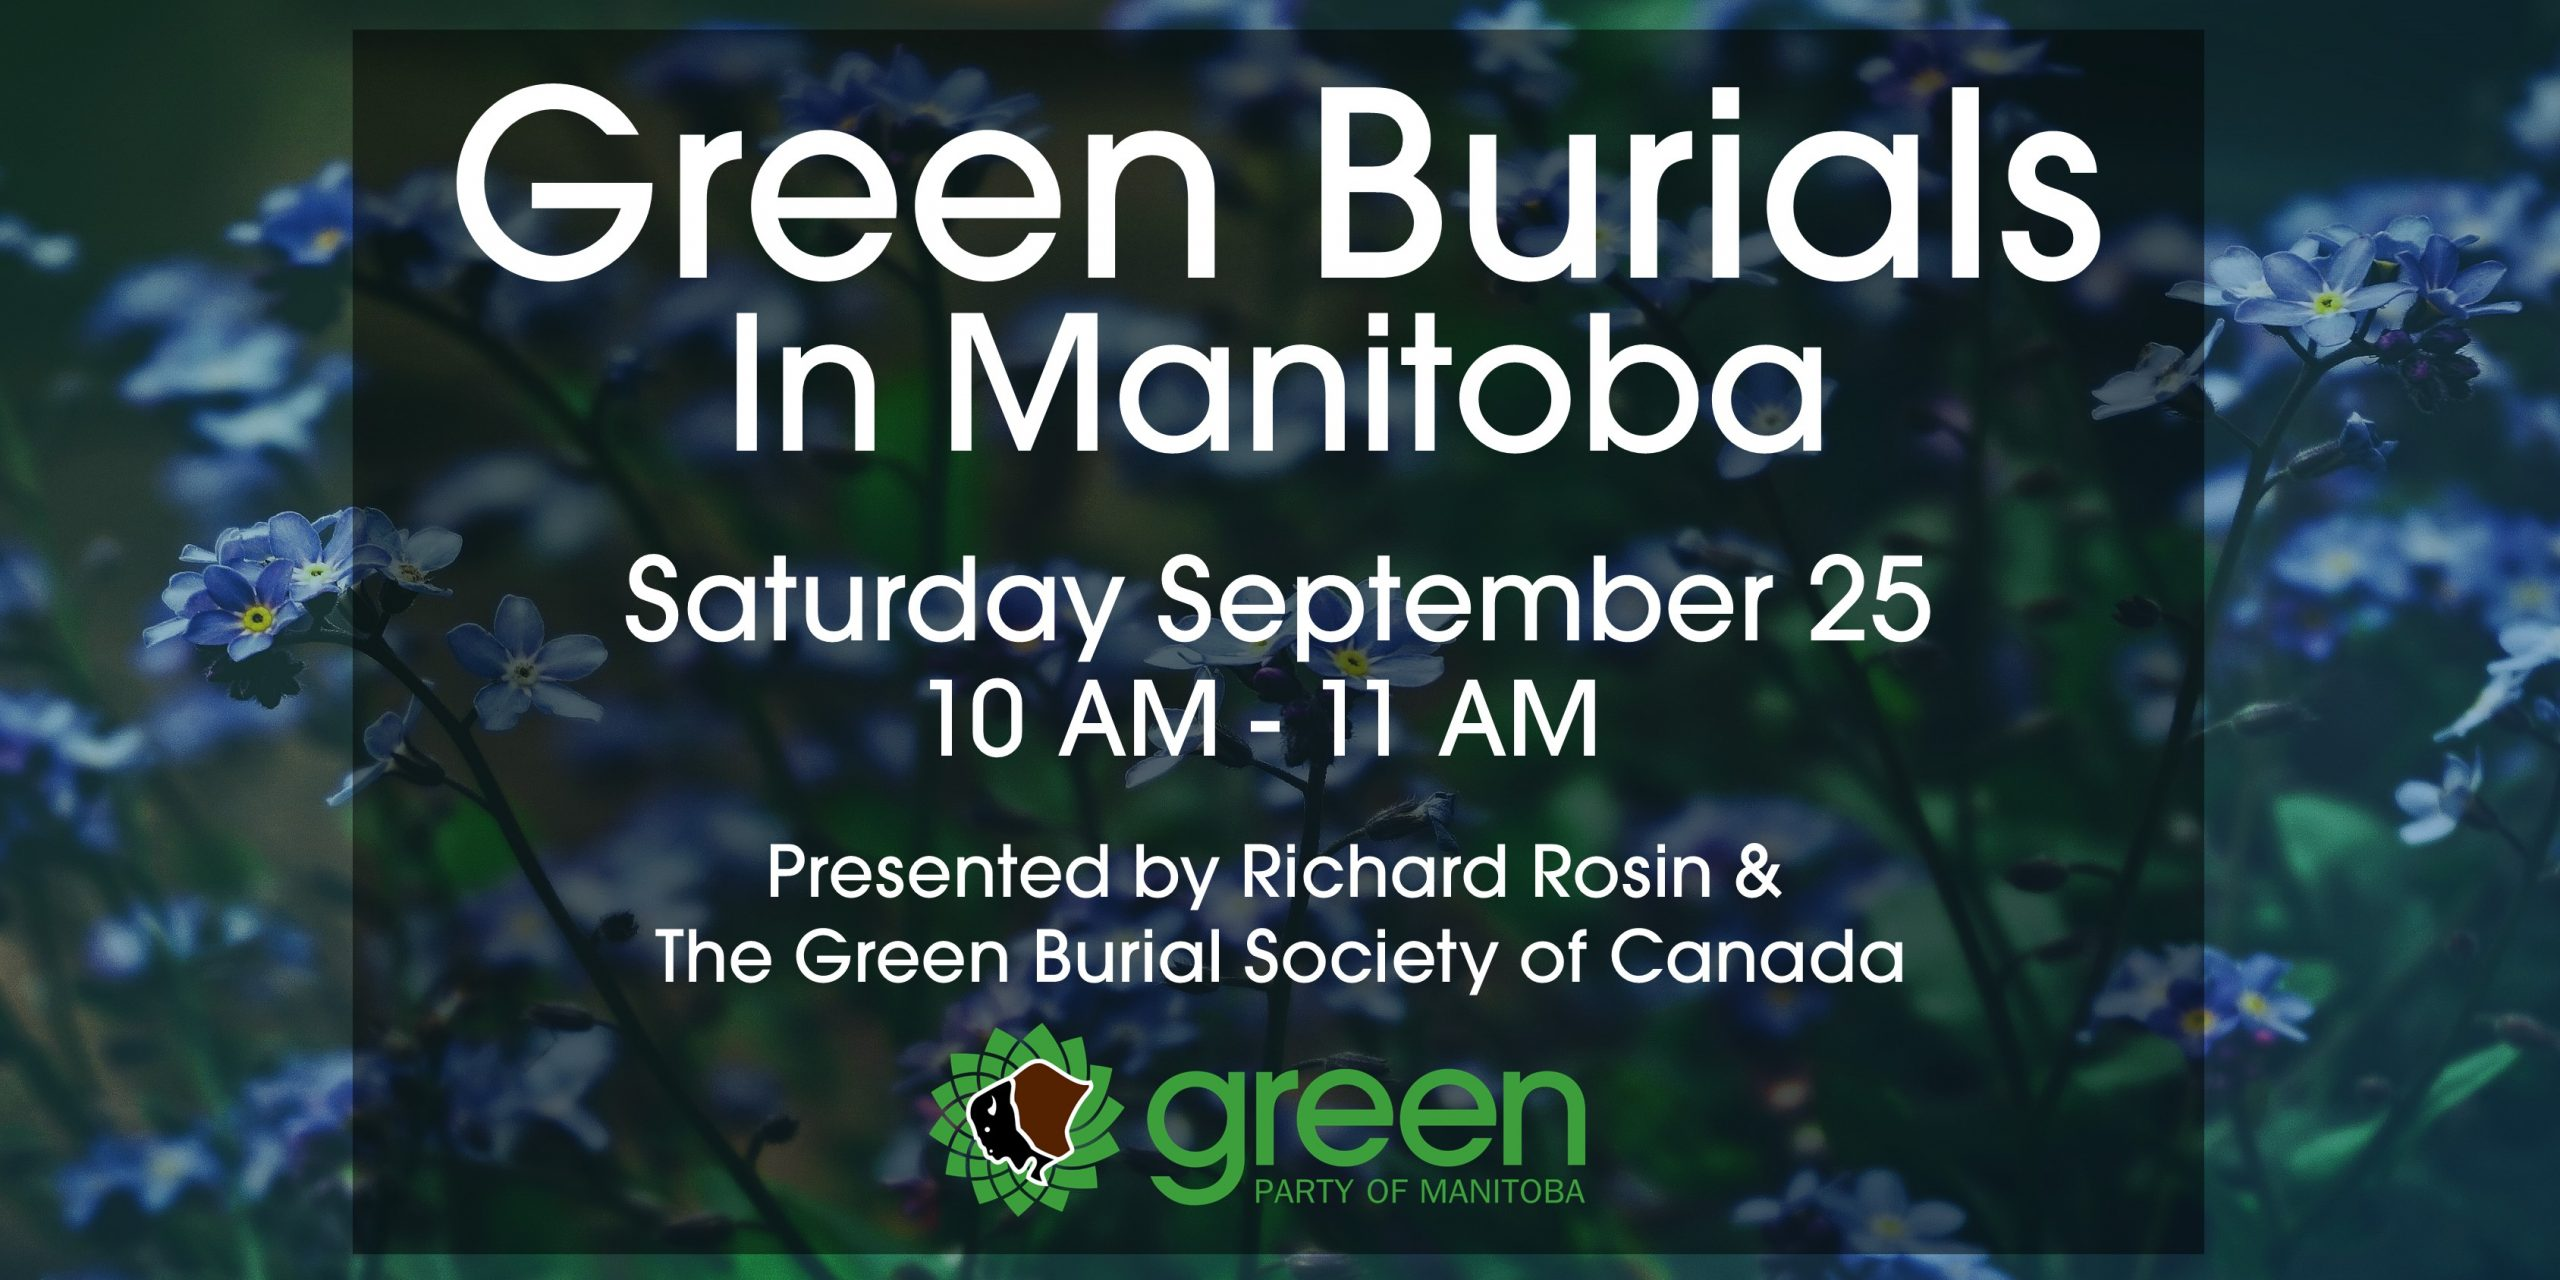 Green Burials in Manitoba Poster